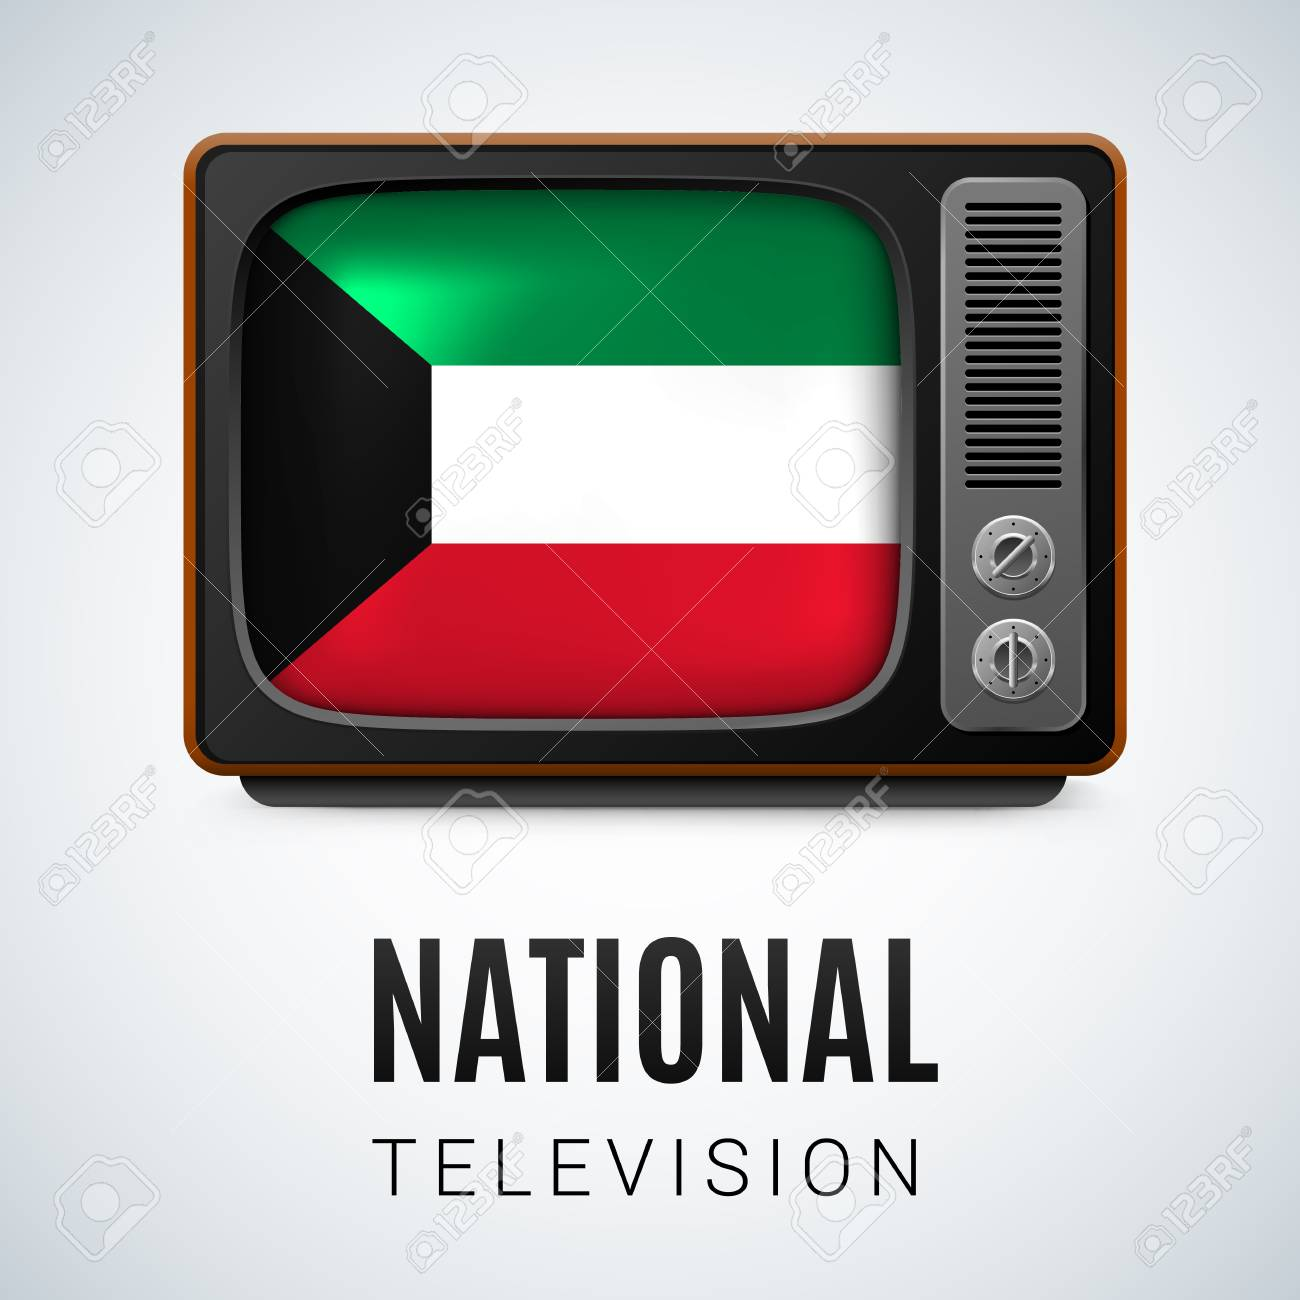 Vintage TV and Flag of Kuwait as Symbol National Television